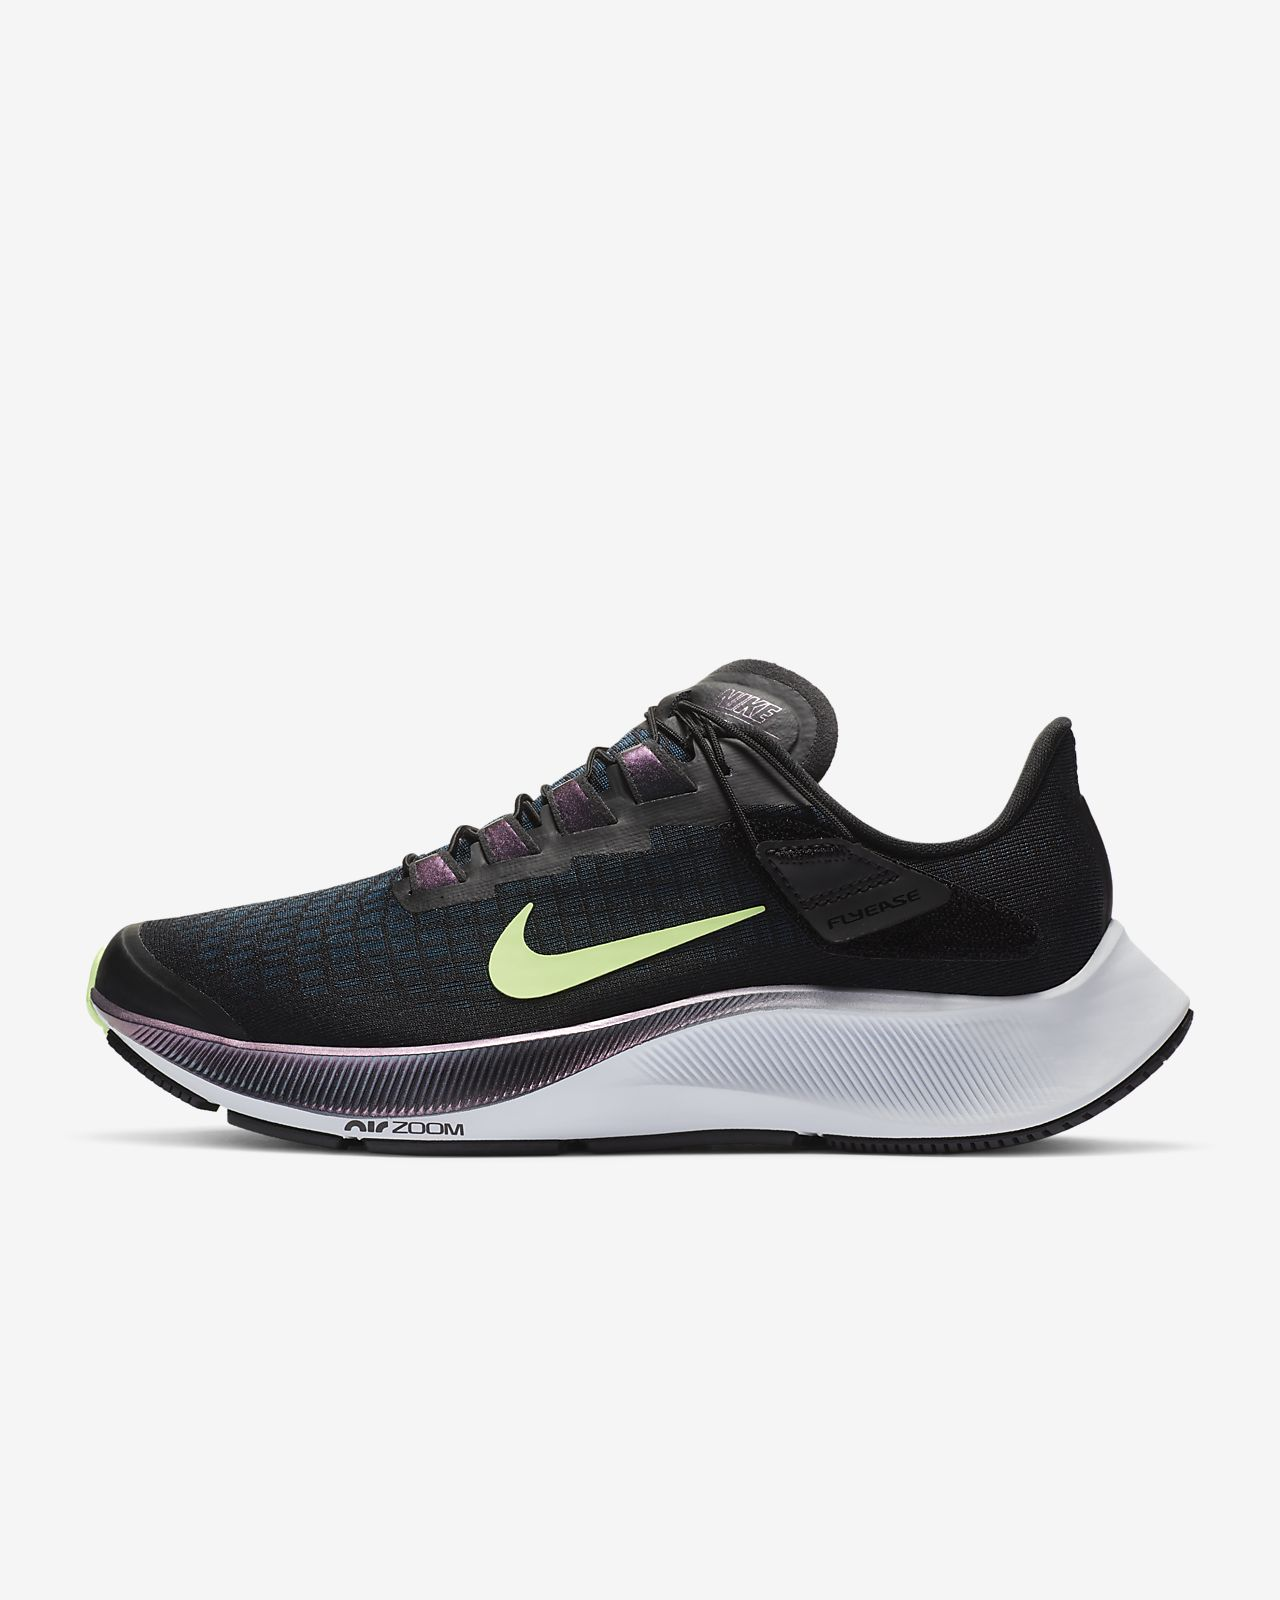 Chaussure de running Nike Air Zoom Pegasus 37 FlyEase pour Femme